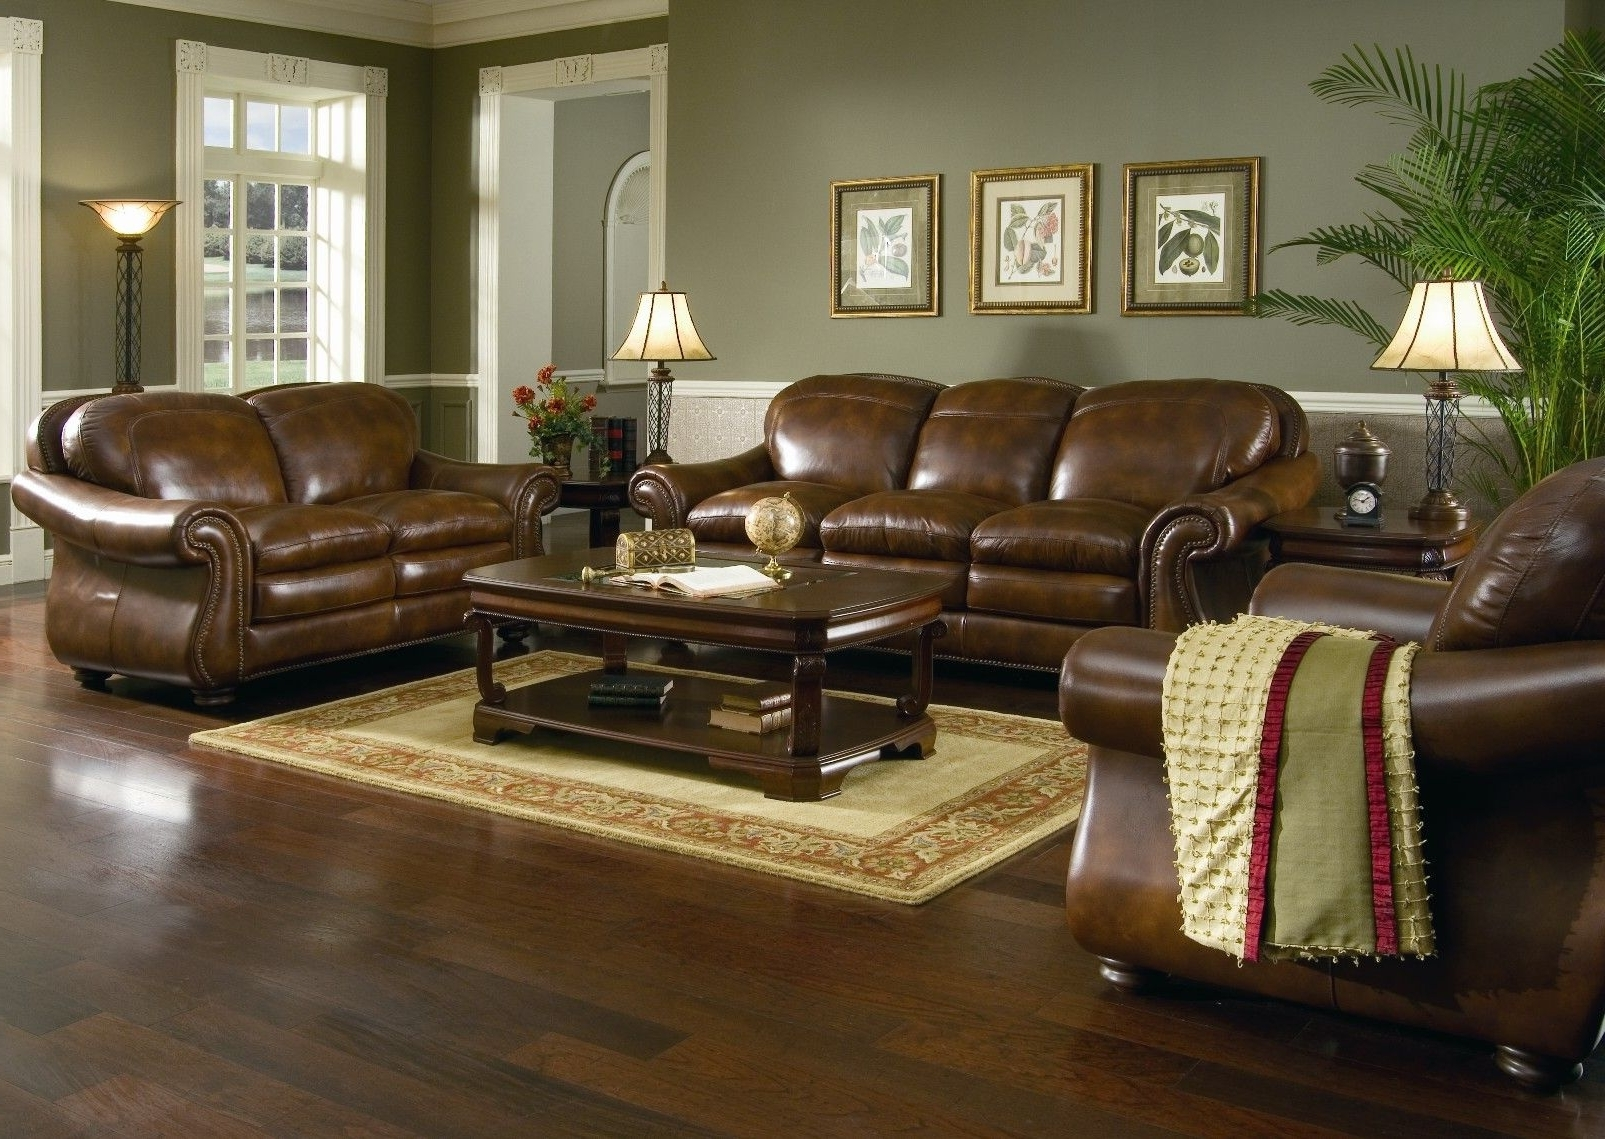 Most Current Colorful Sofas And Chairs For Brown Leather Sofa Set For Living Room With Dark Hardwood Floors (View 12 of 20)